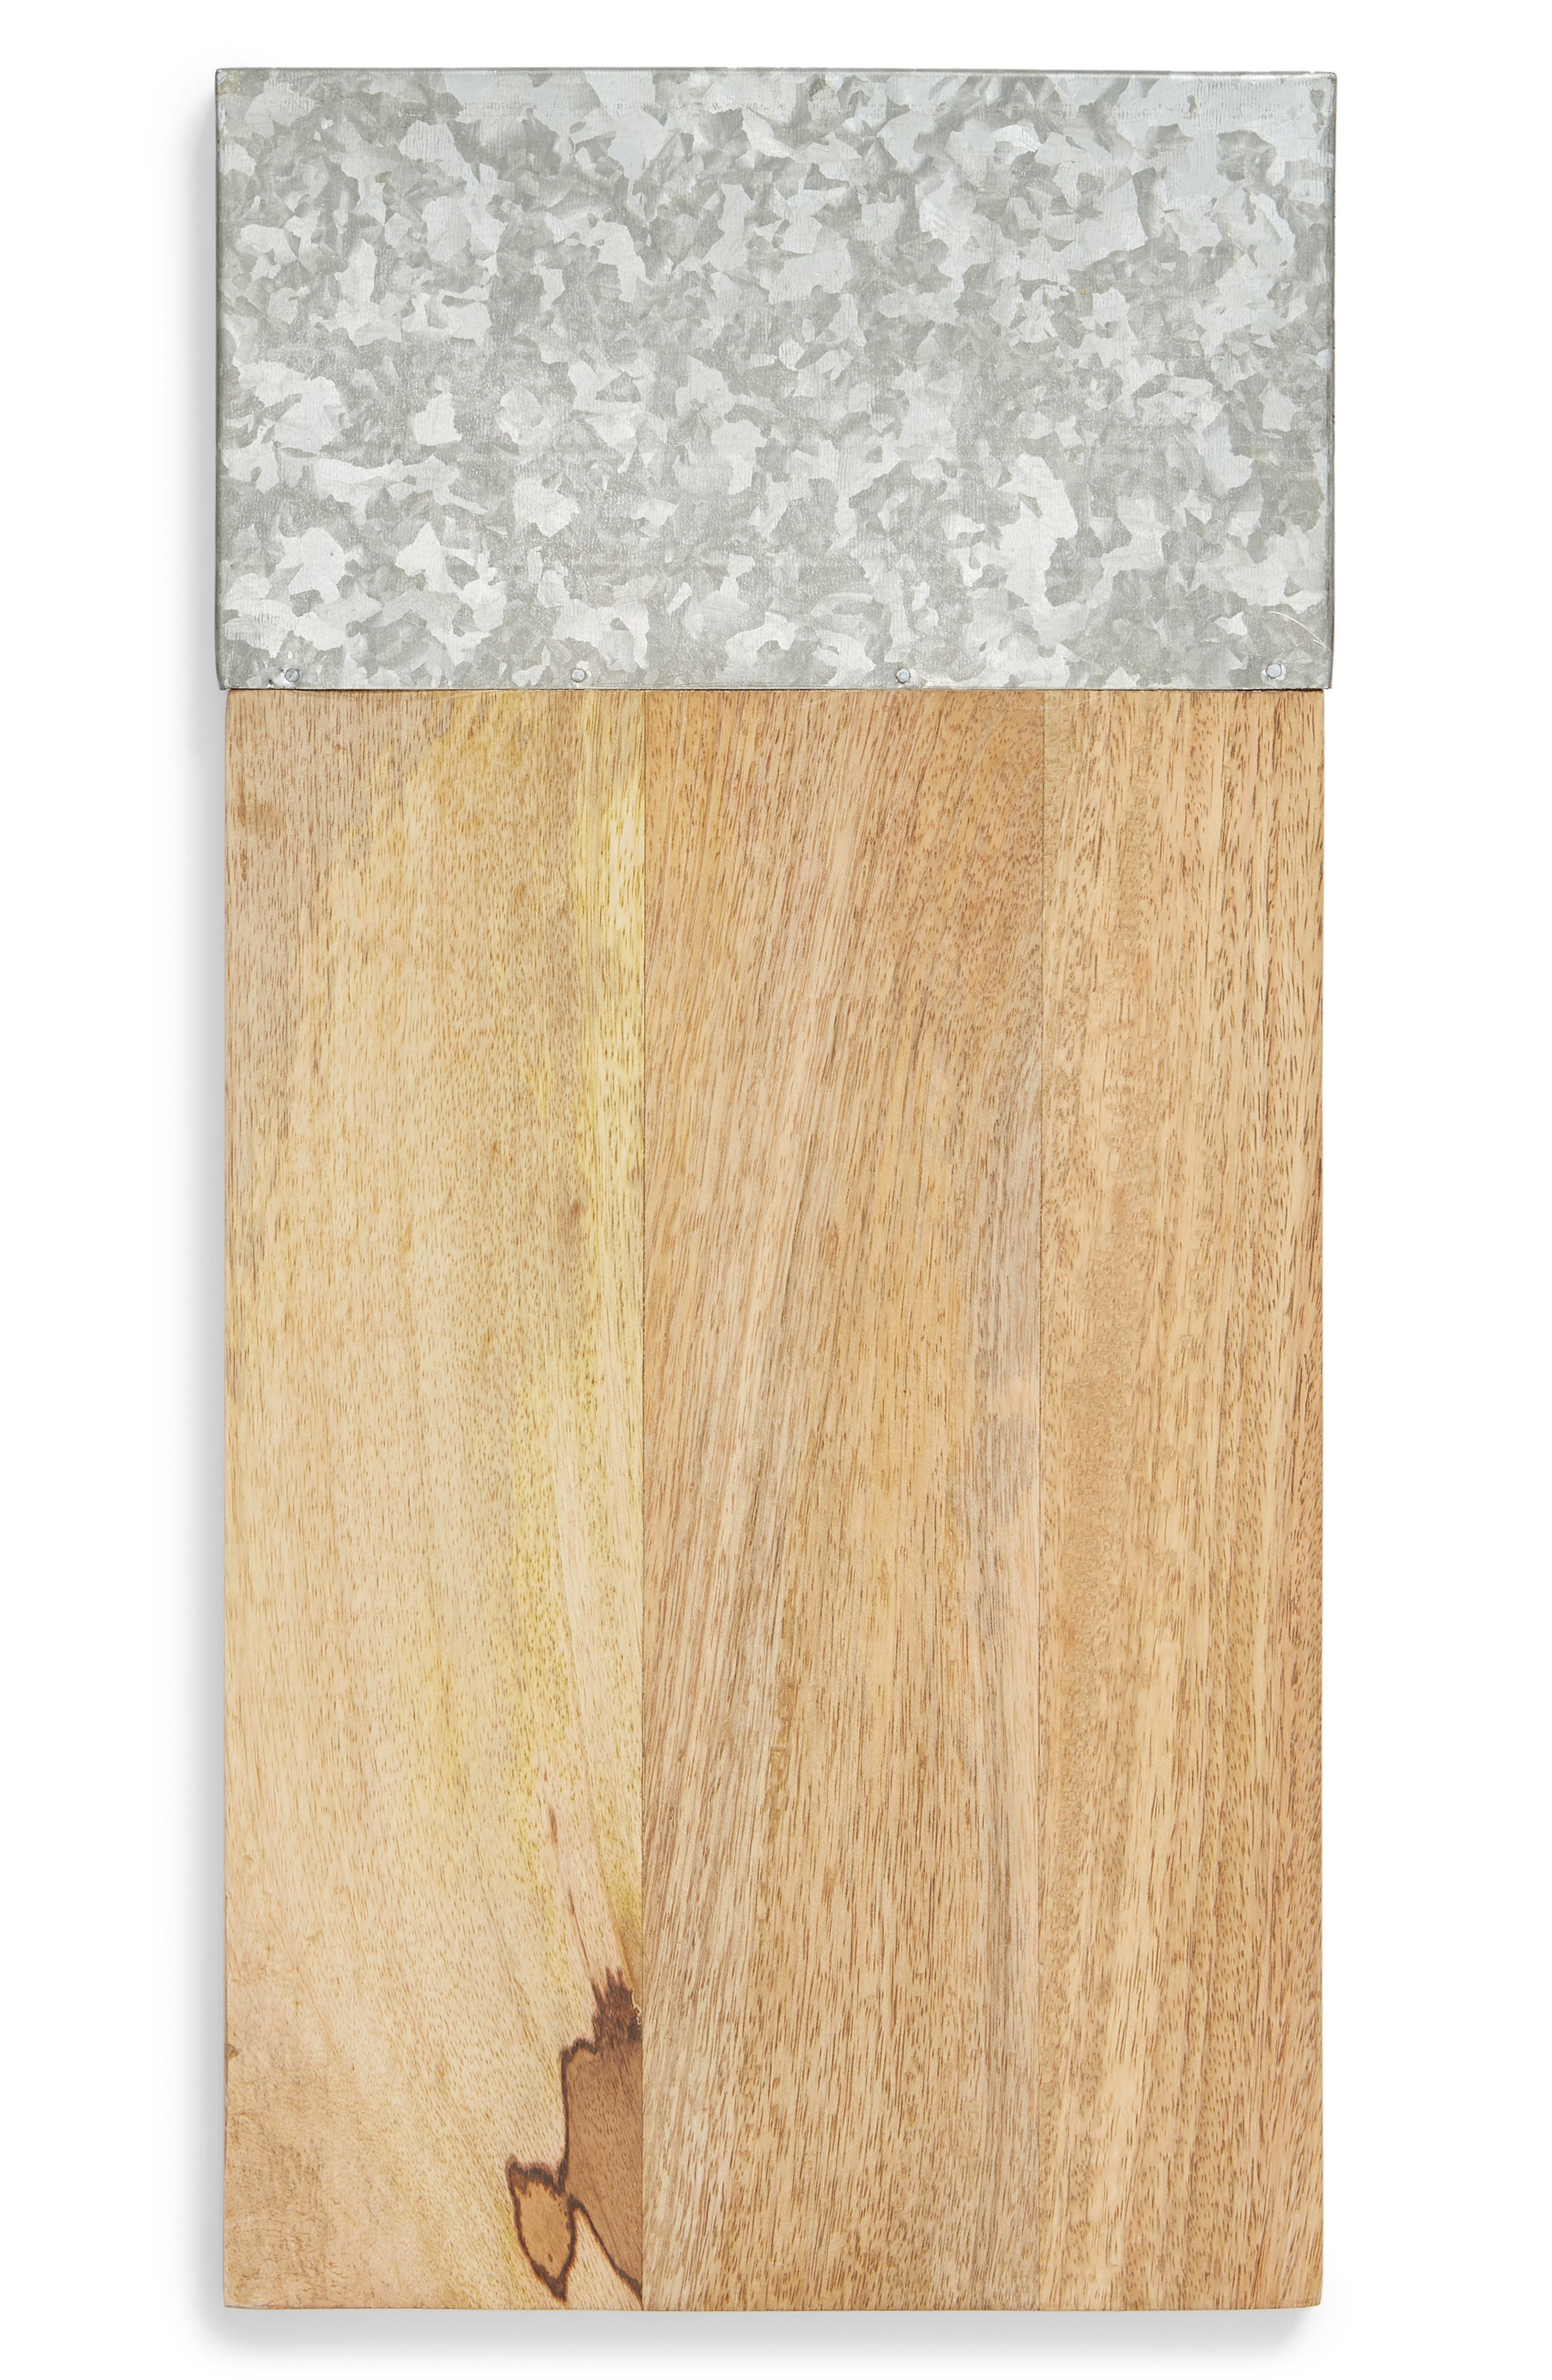 Wood & Galvanized Iron Serving Board,                         Main,                         color, GREY